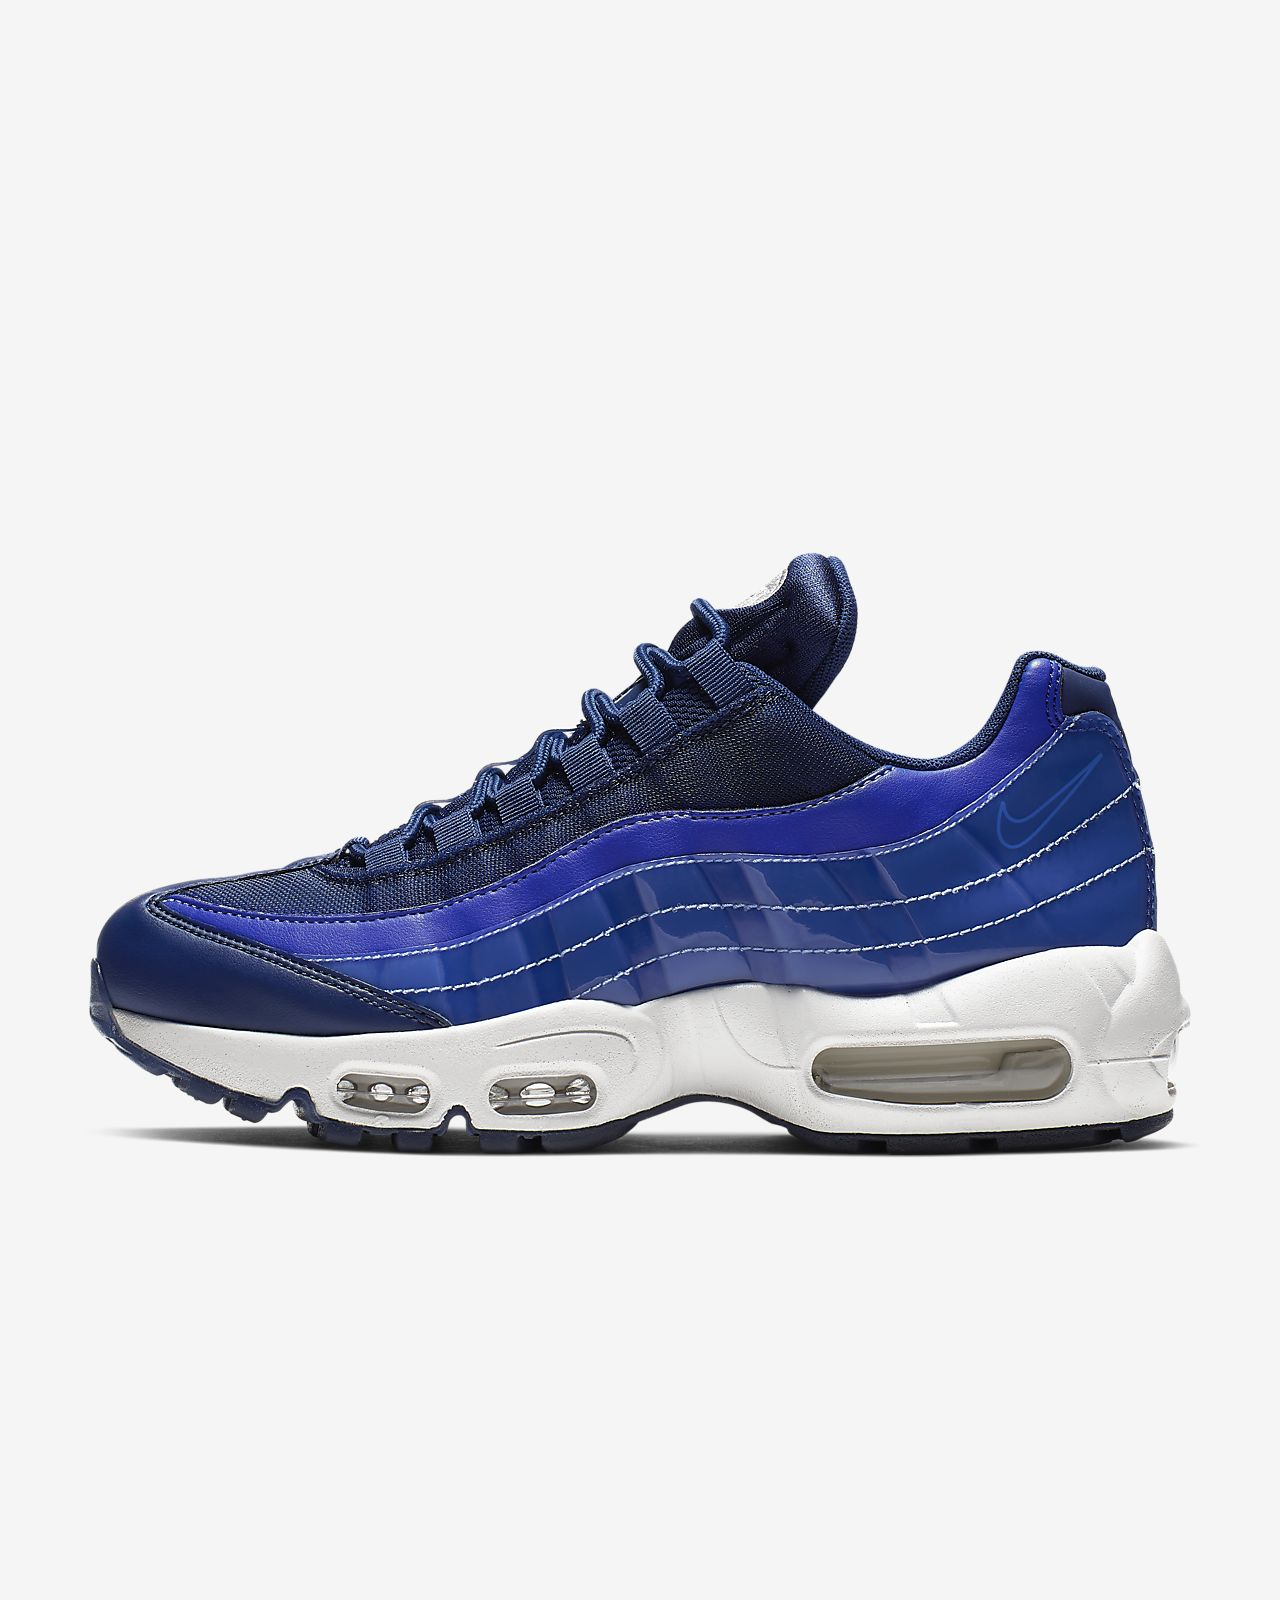 competitive price 97244 7ca29 ... Chaussure Nike Air Max 95 SE pour Femme